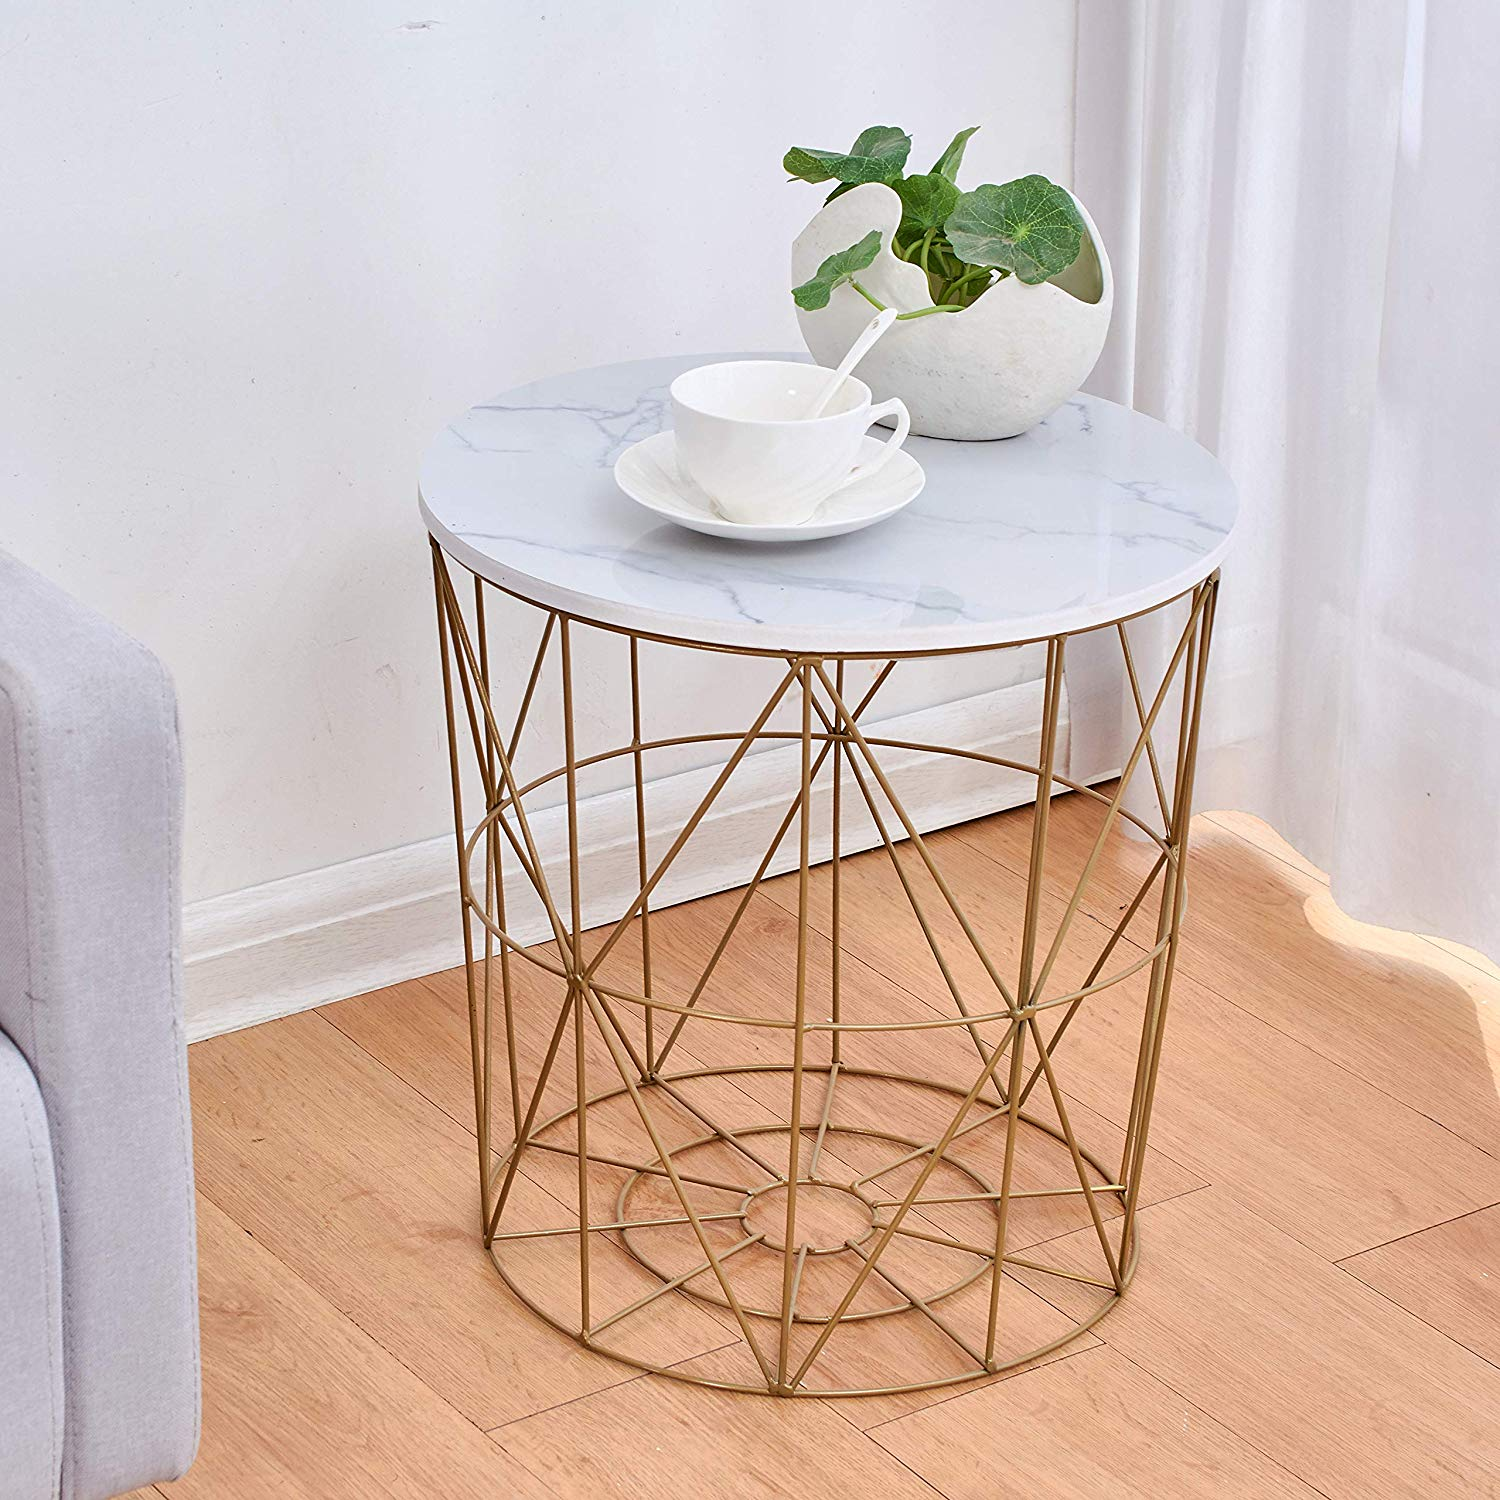 Picture of: Cherry Tree Furniture Koram Marble Effect Top Basket Side Table Golden Geometric Wire Frame End Table Shop Designer Home Furnishings